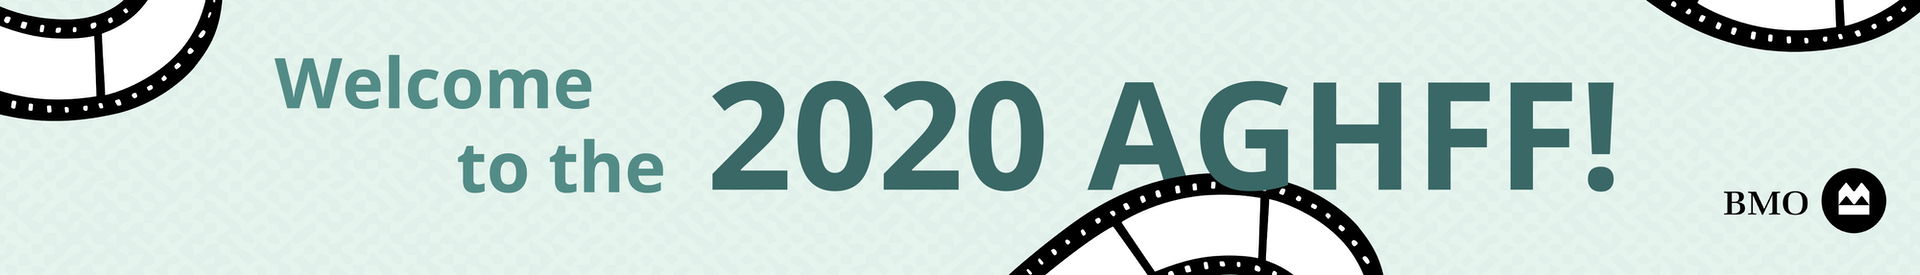 AGHFF 2020